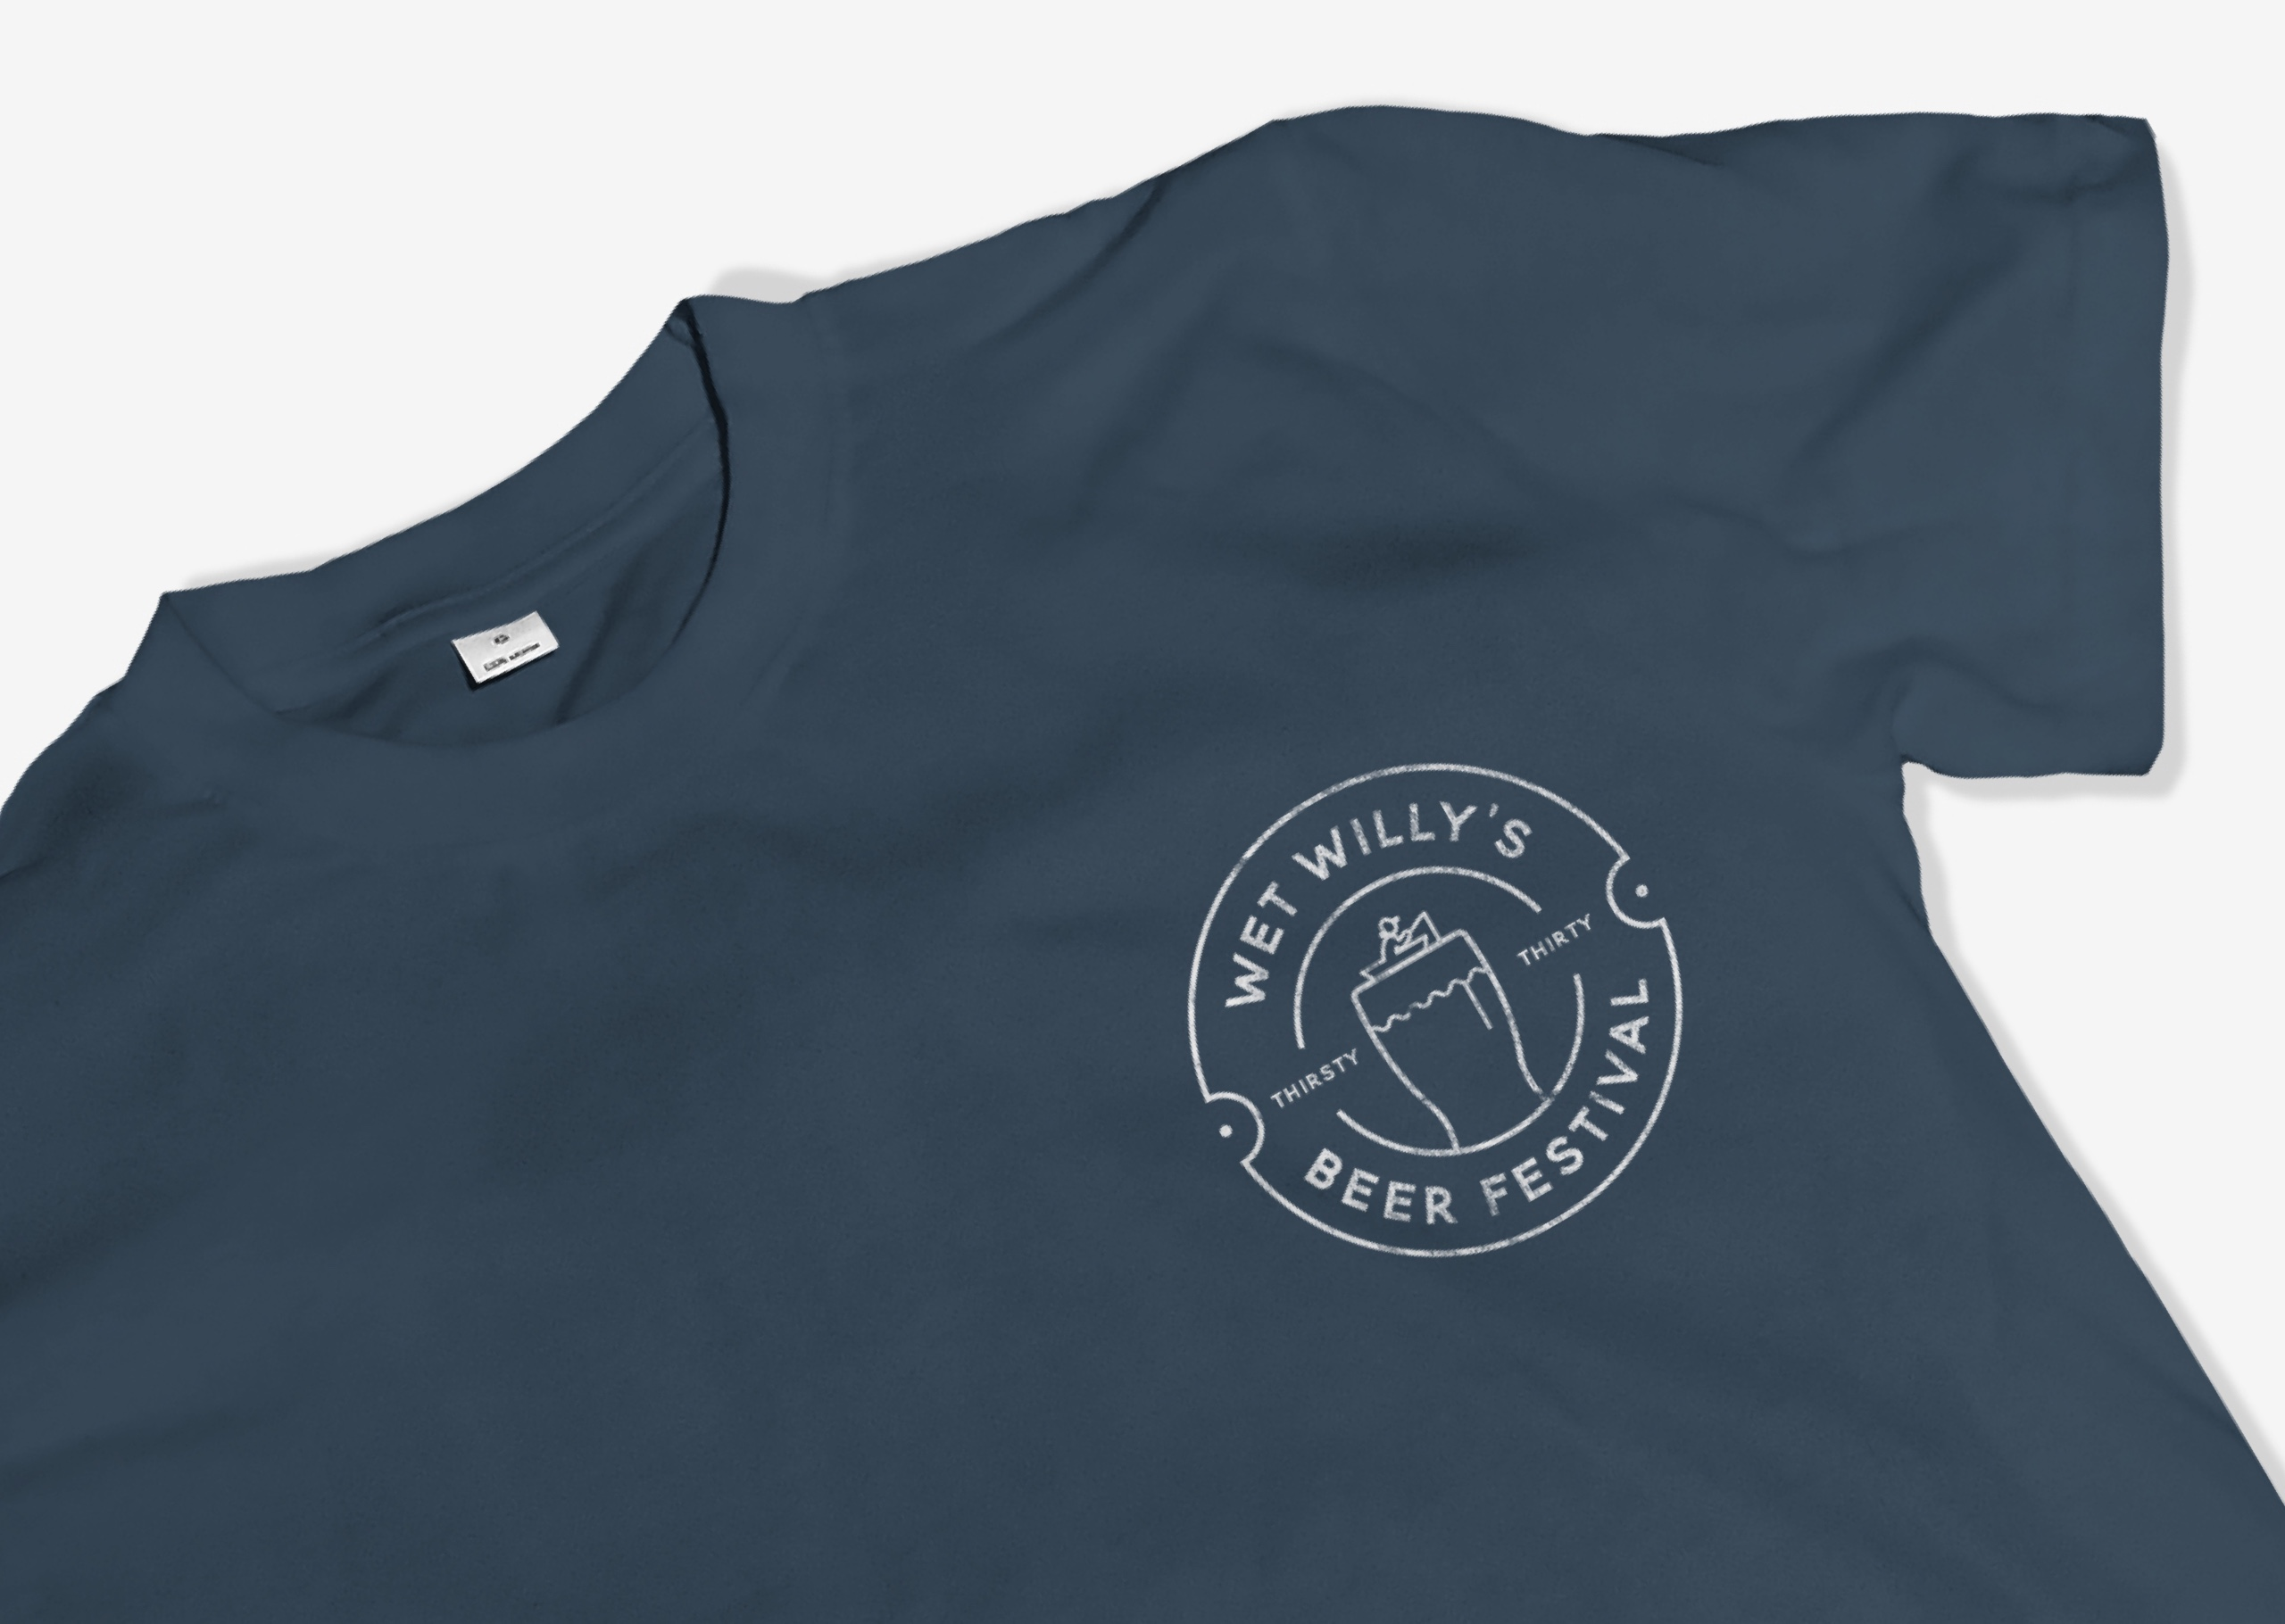 T-shirt and logo design for Wet Willy's Beer Festival